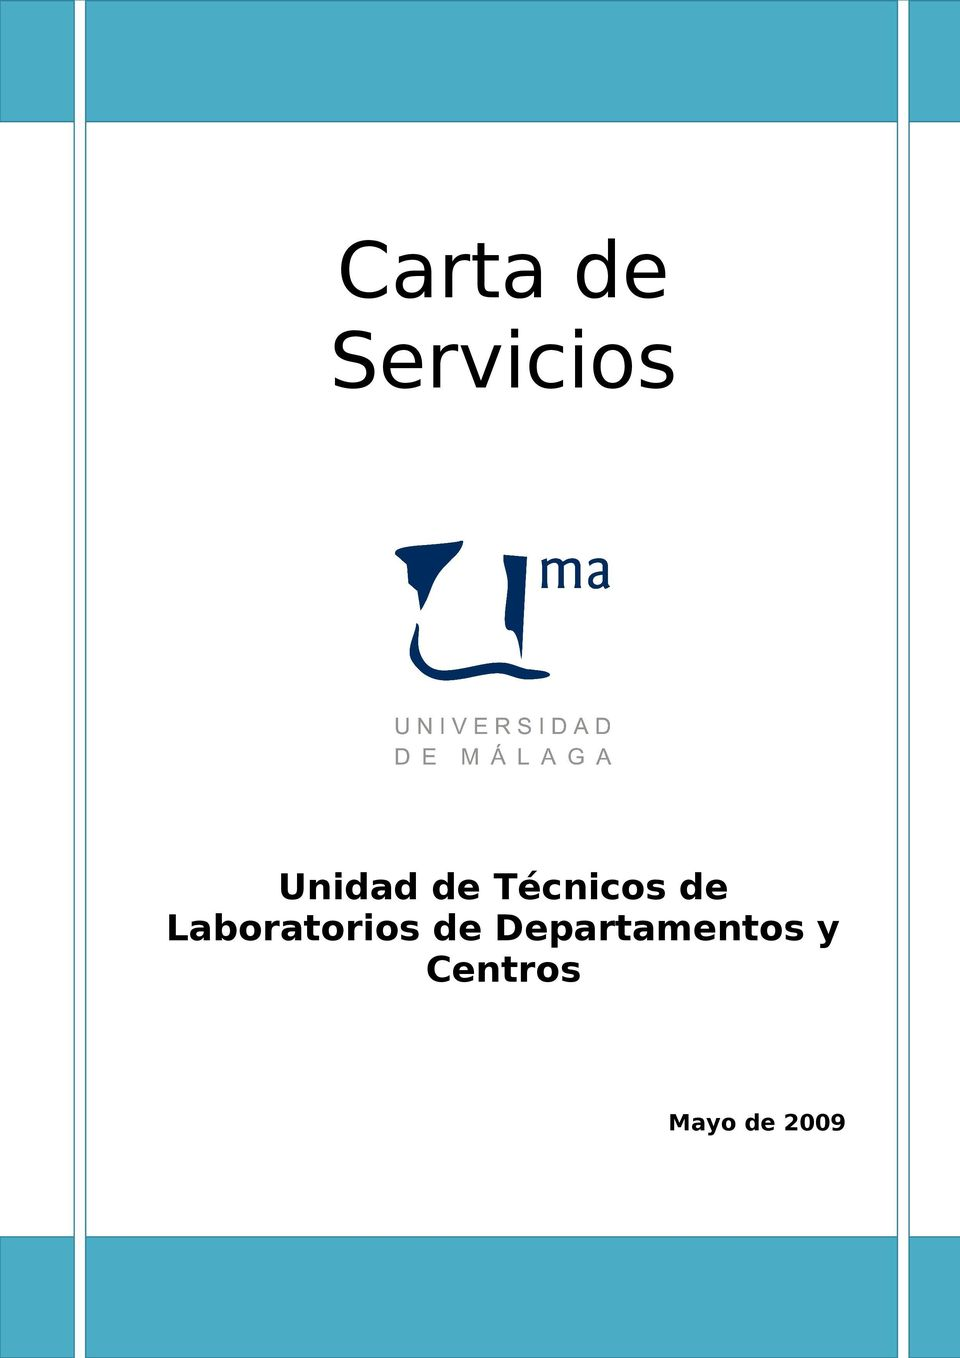 Laboratorios de